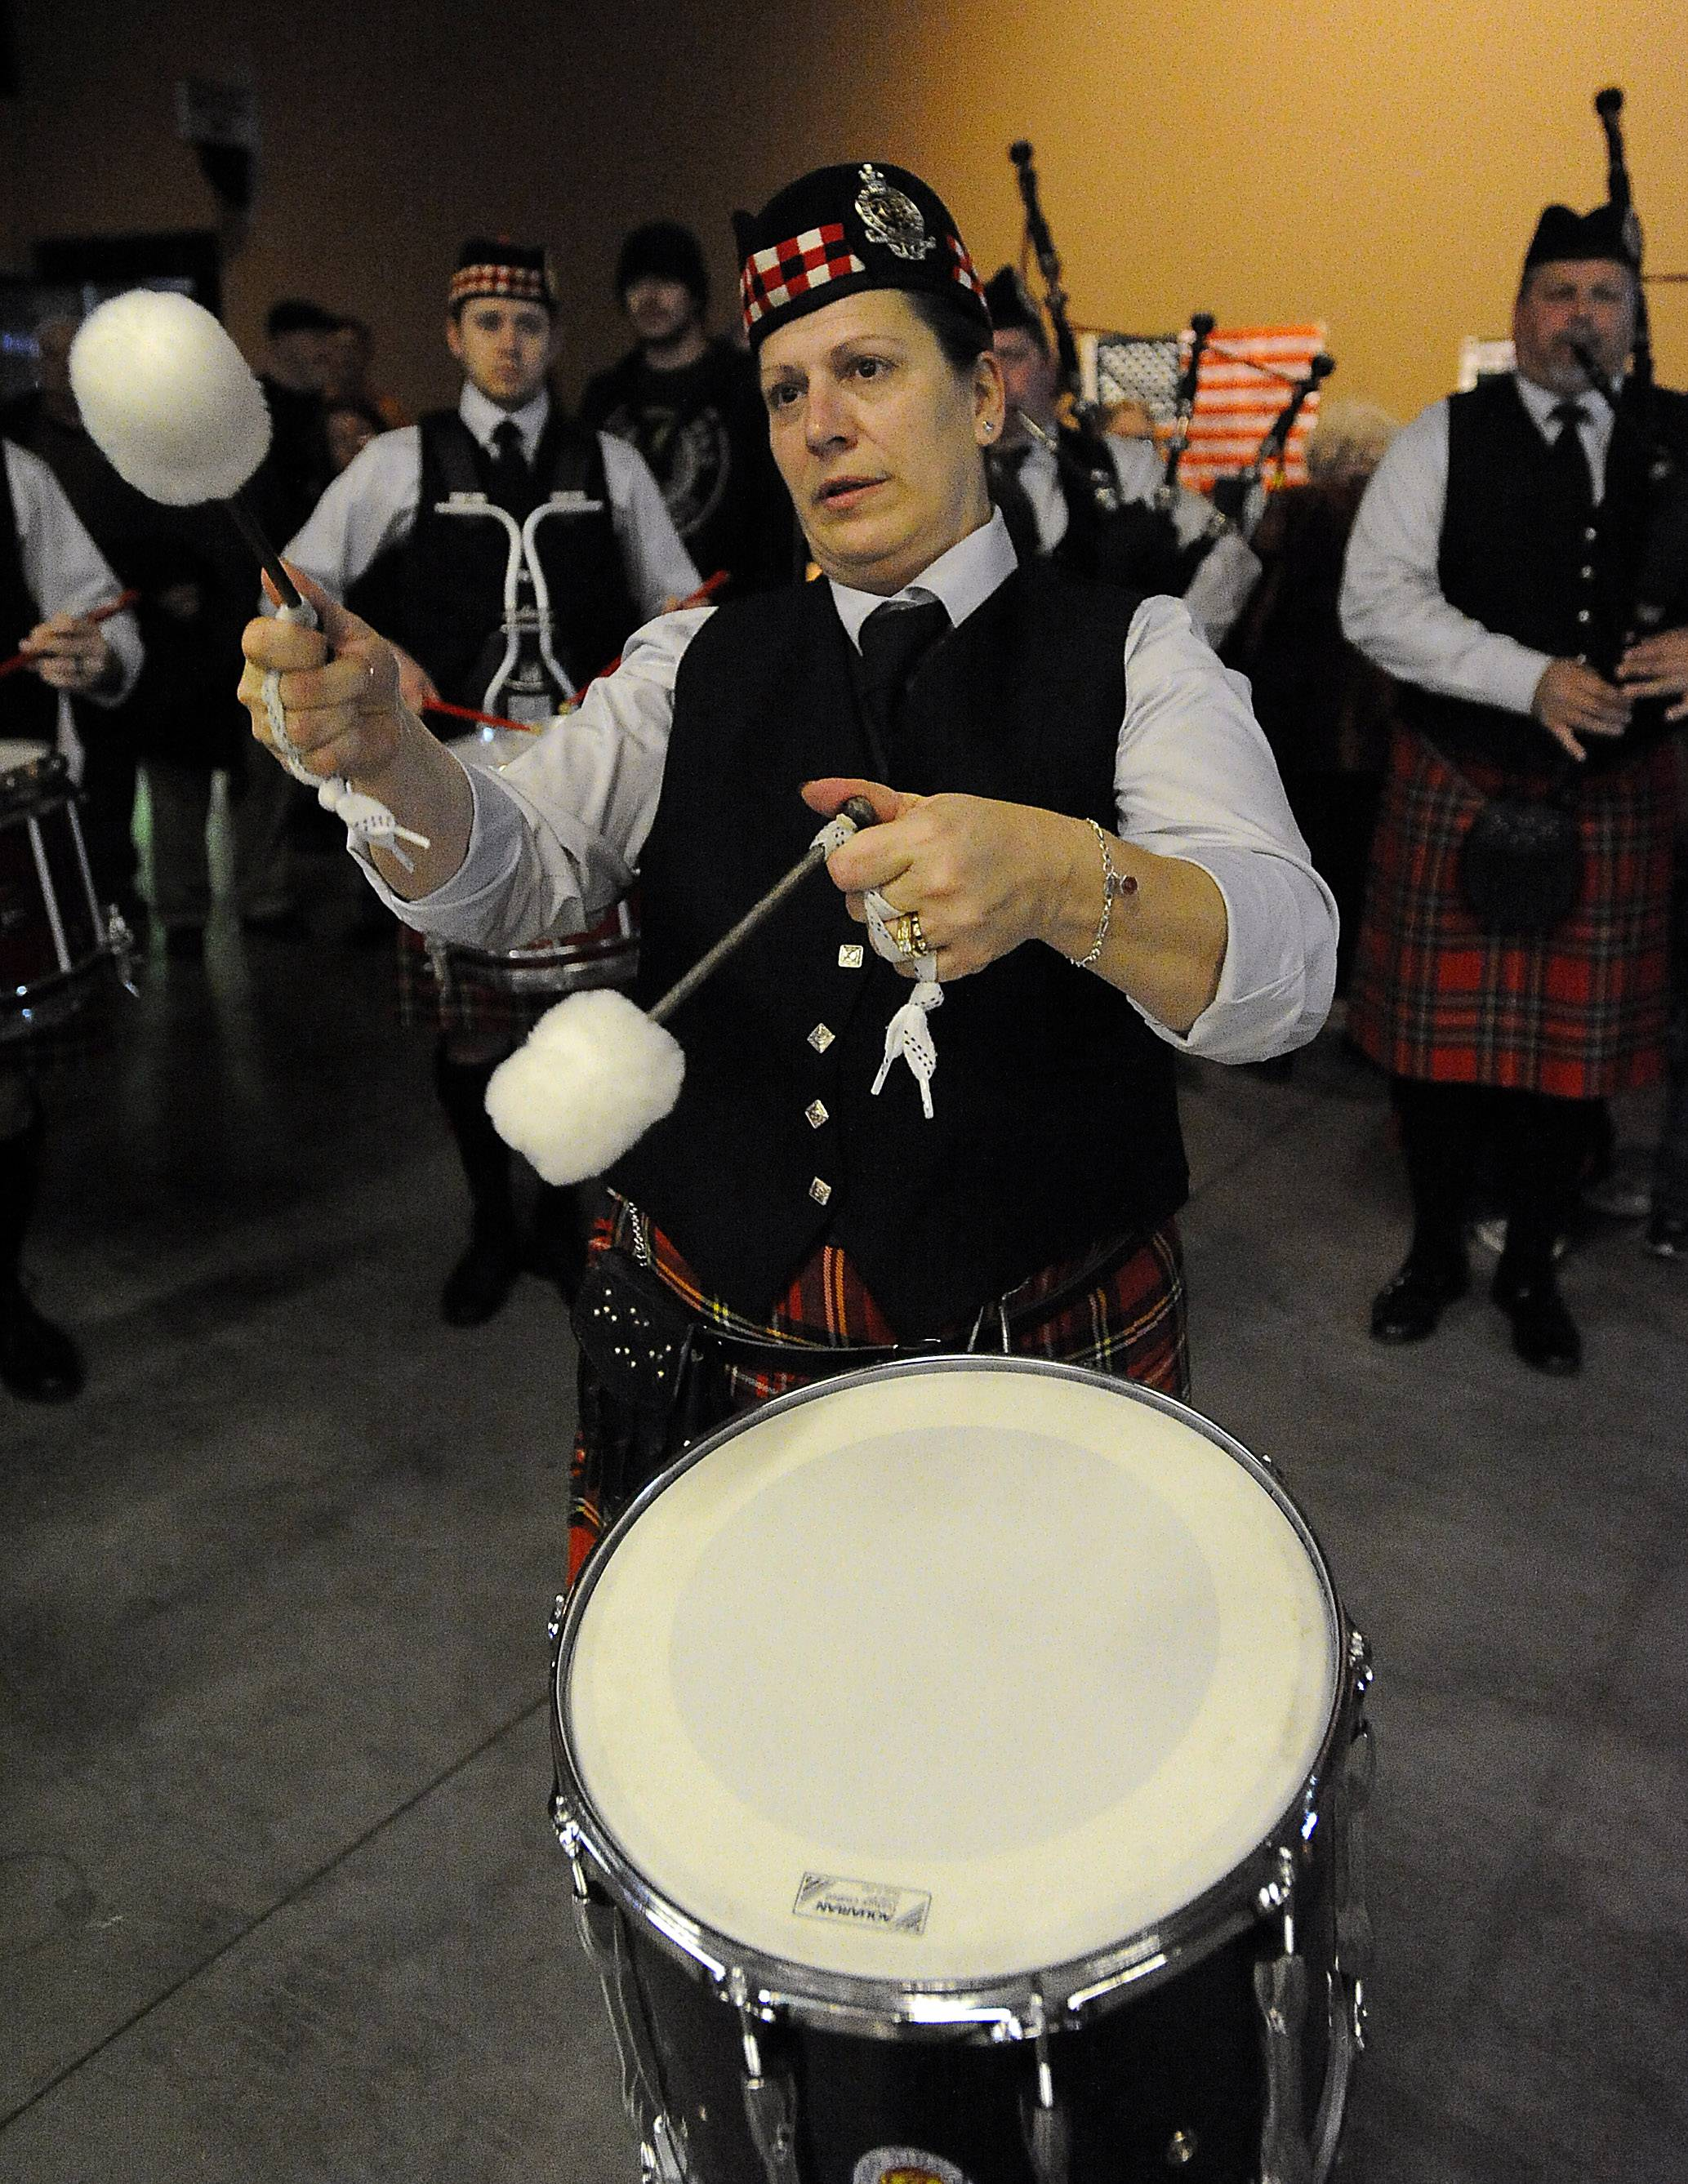 Mary Bjorkman of Hanover Park plays with the Chicago Highland Pipes and Drums at the third annual Northwest Celtic Fest on Saturday at the Sears Centre in Hoffman Estates.